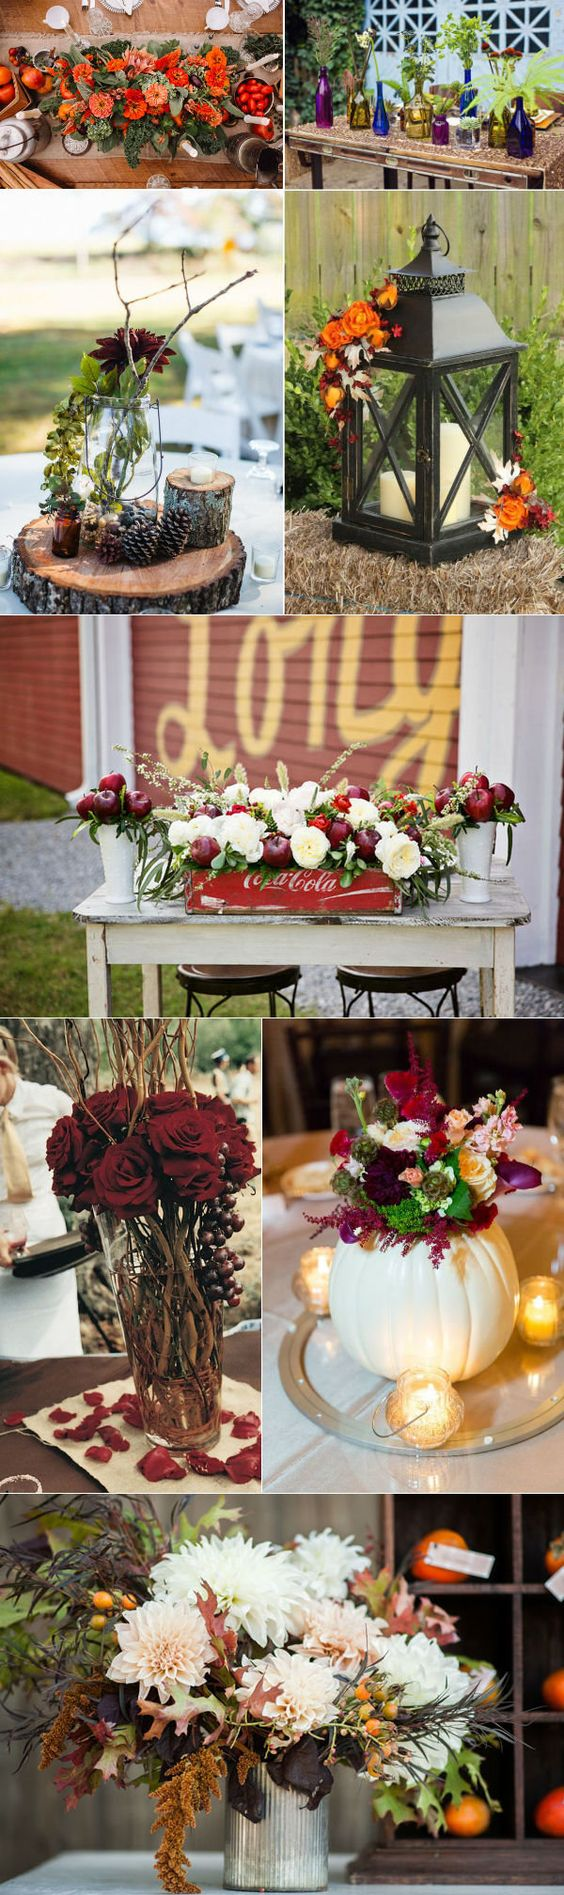 elegant country rustic fall wedding centerpieces